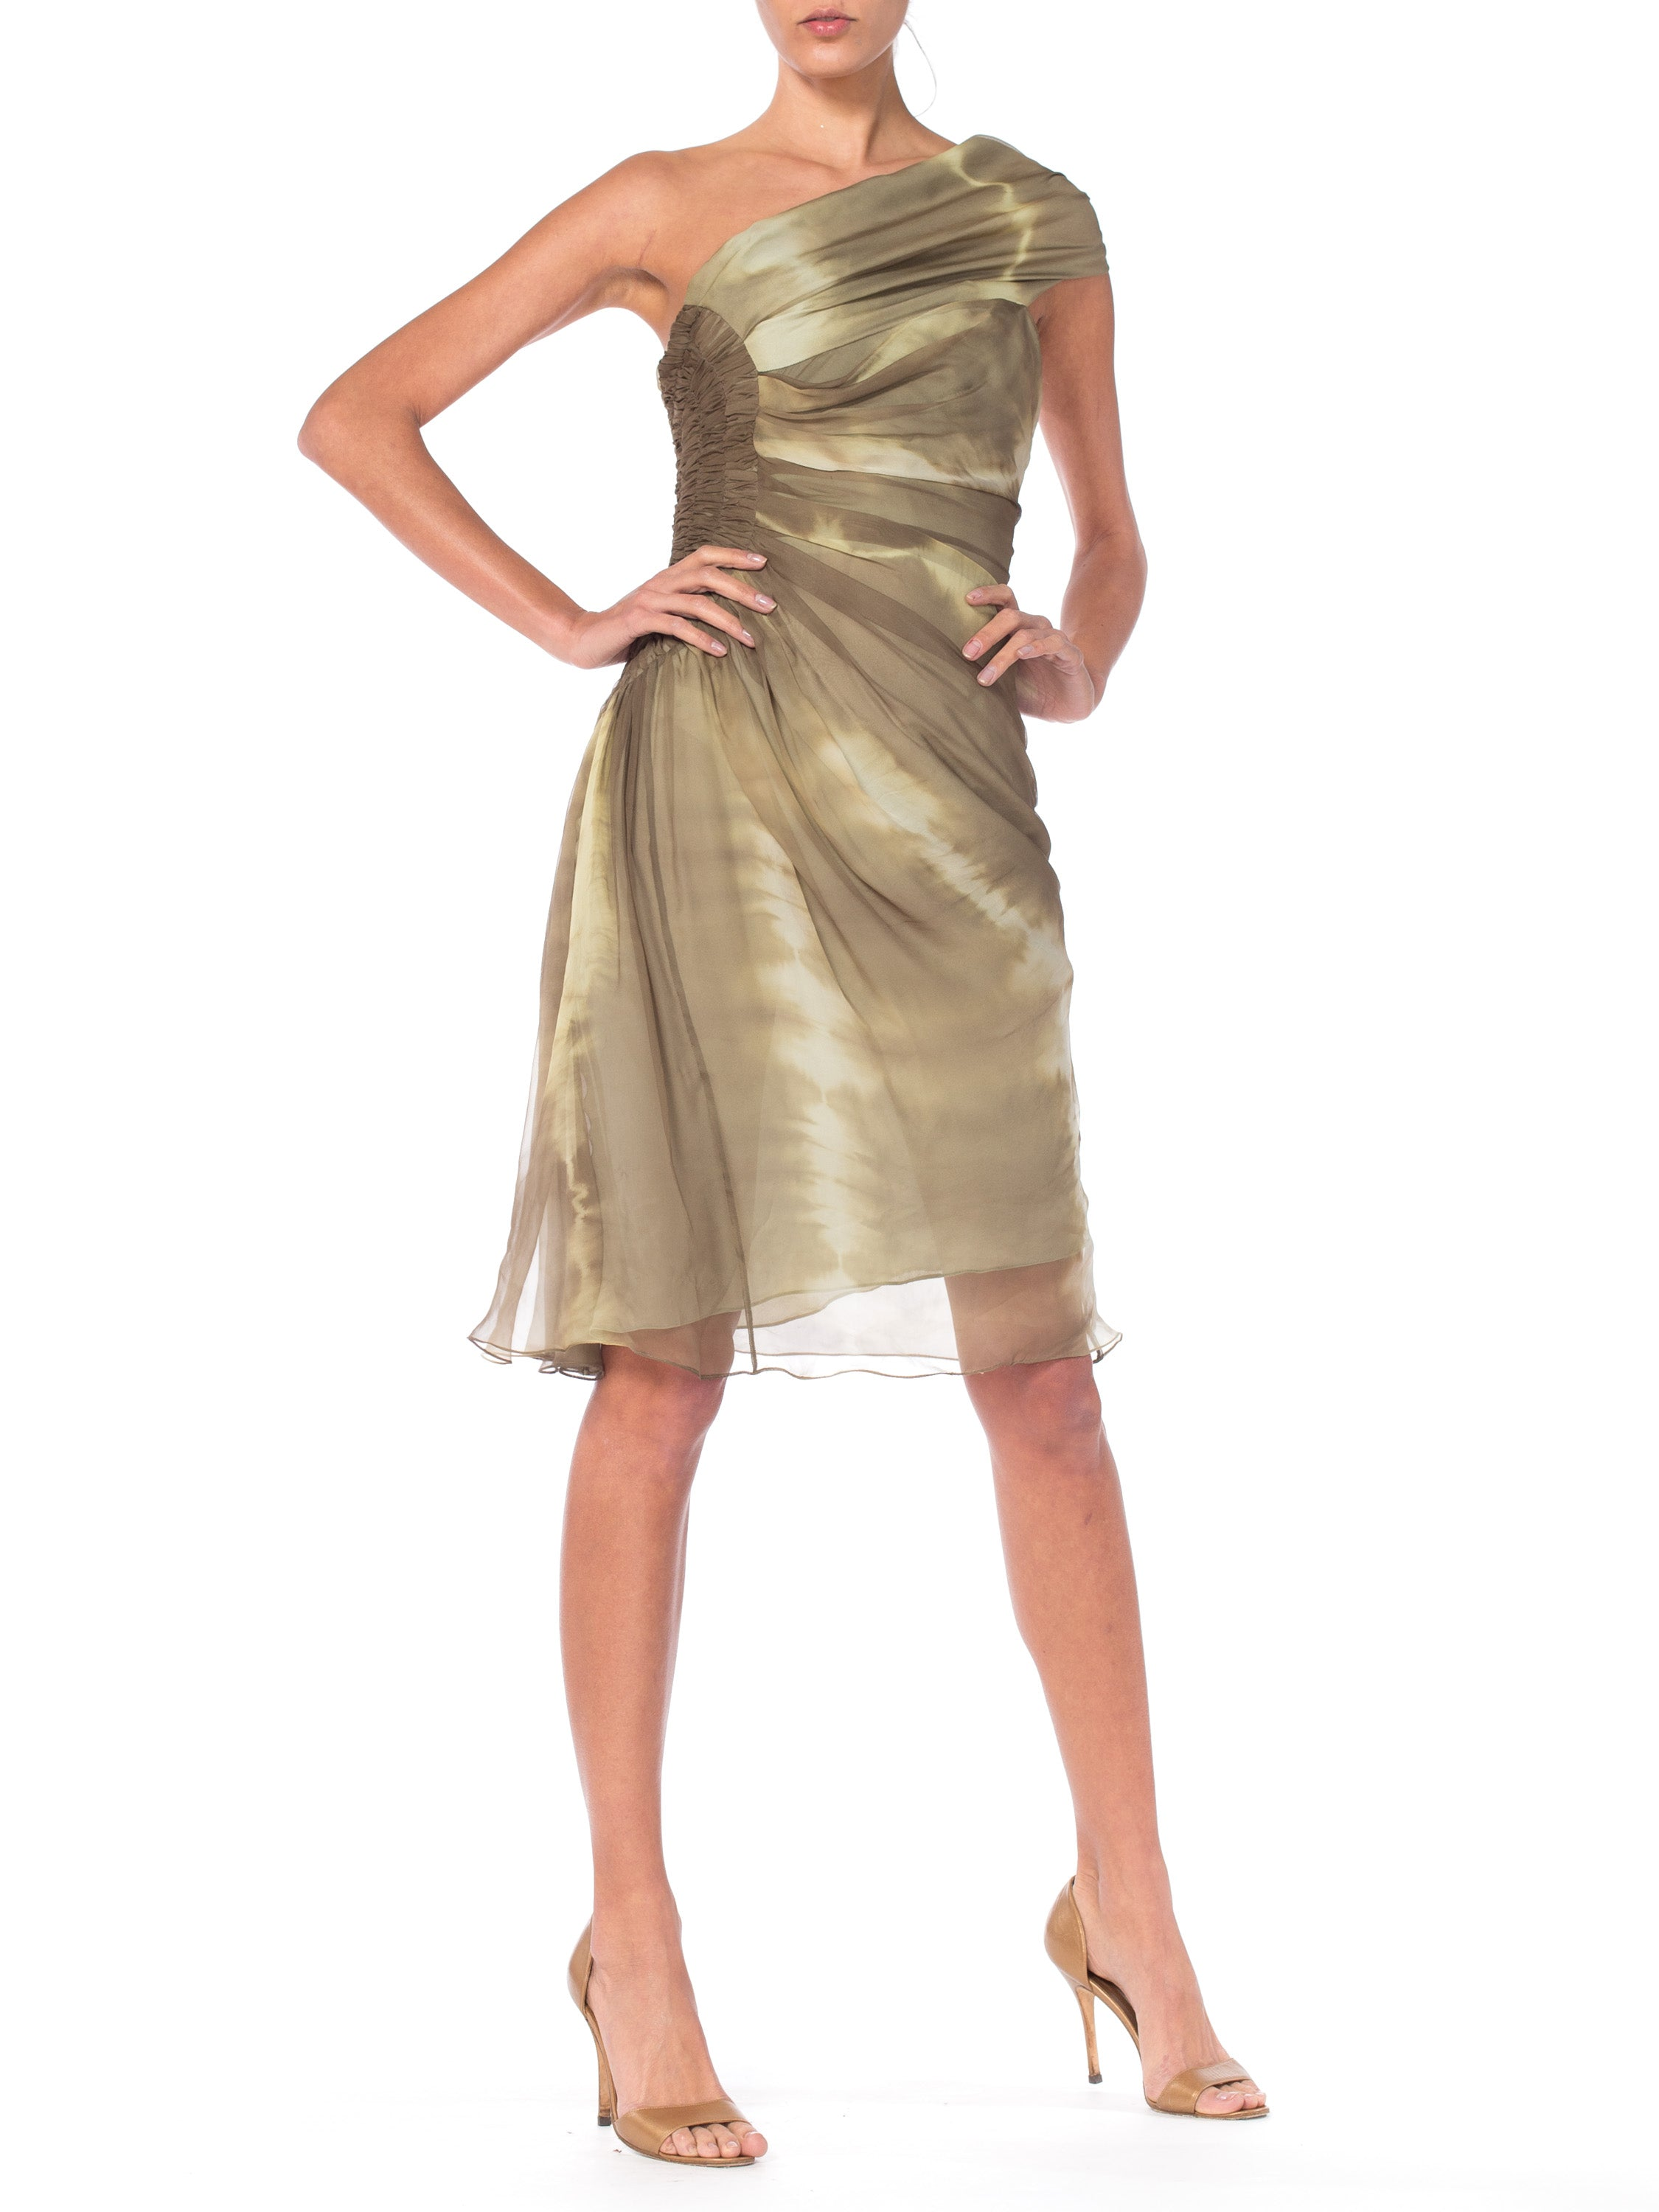 2000S John Galliano CHRISTIAN DIOR Olive Green Silk Chiffon Tie Dyed And Draped One Shoulder Bias Dress